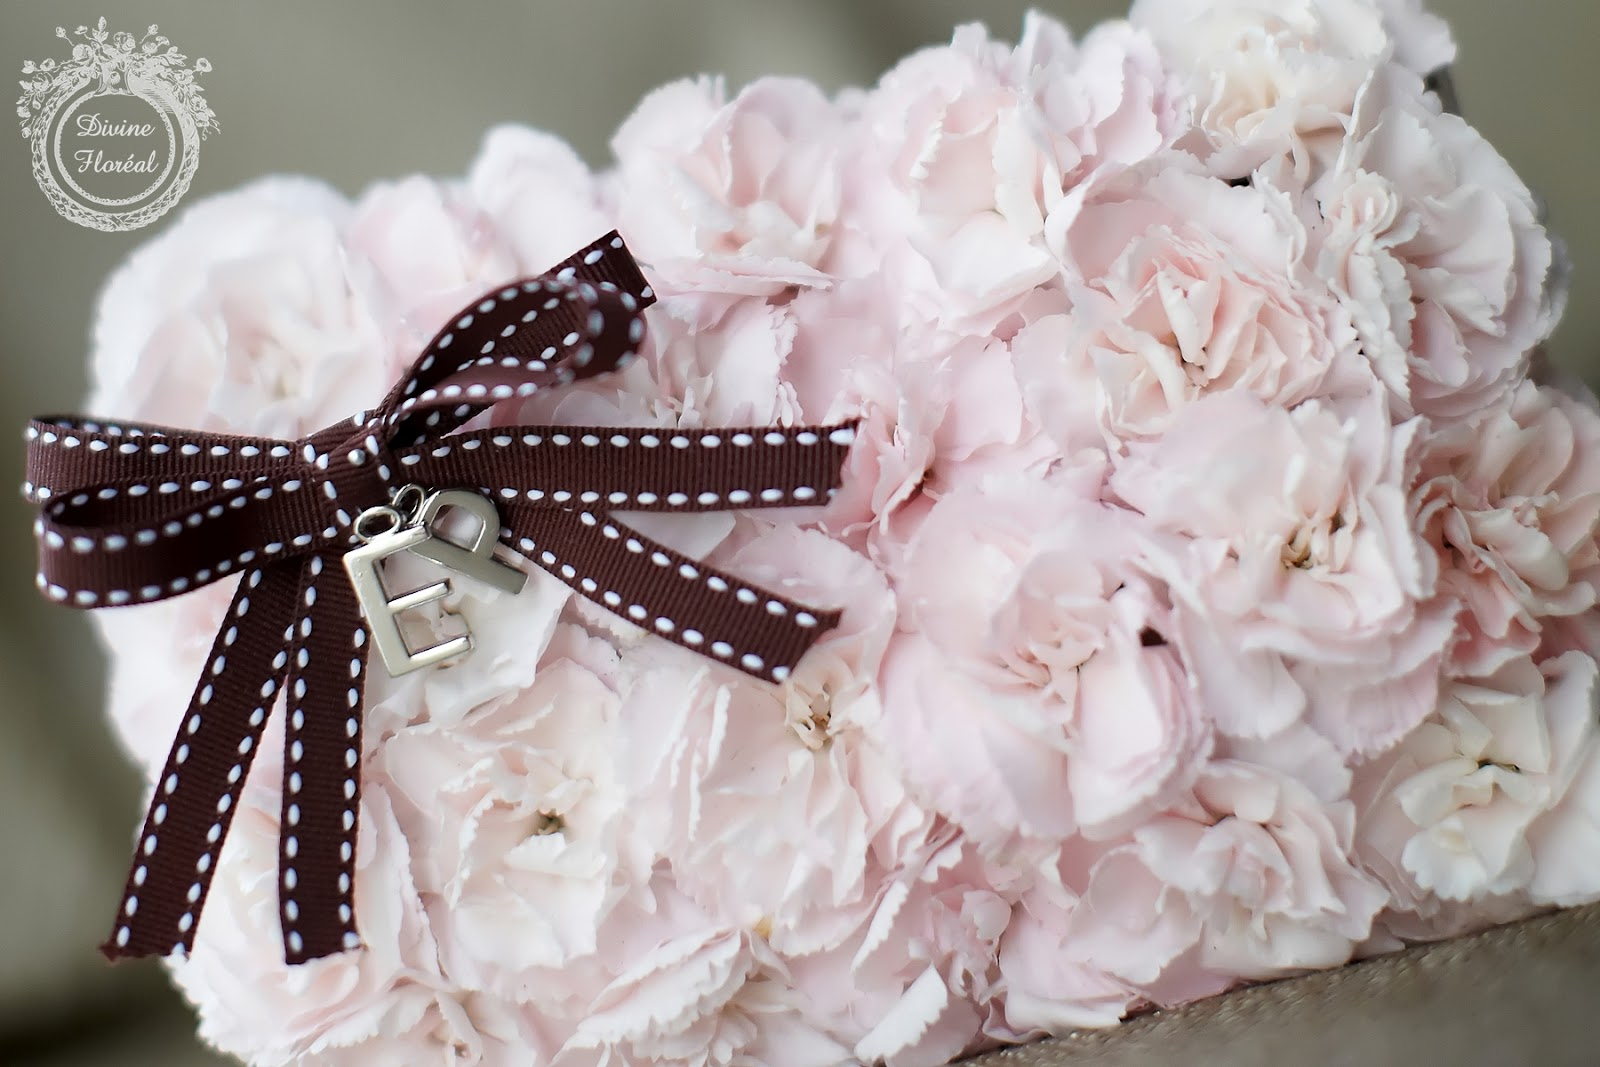 Divine Floreal: Bouquet for Traditional Chinese Wedding Gown